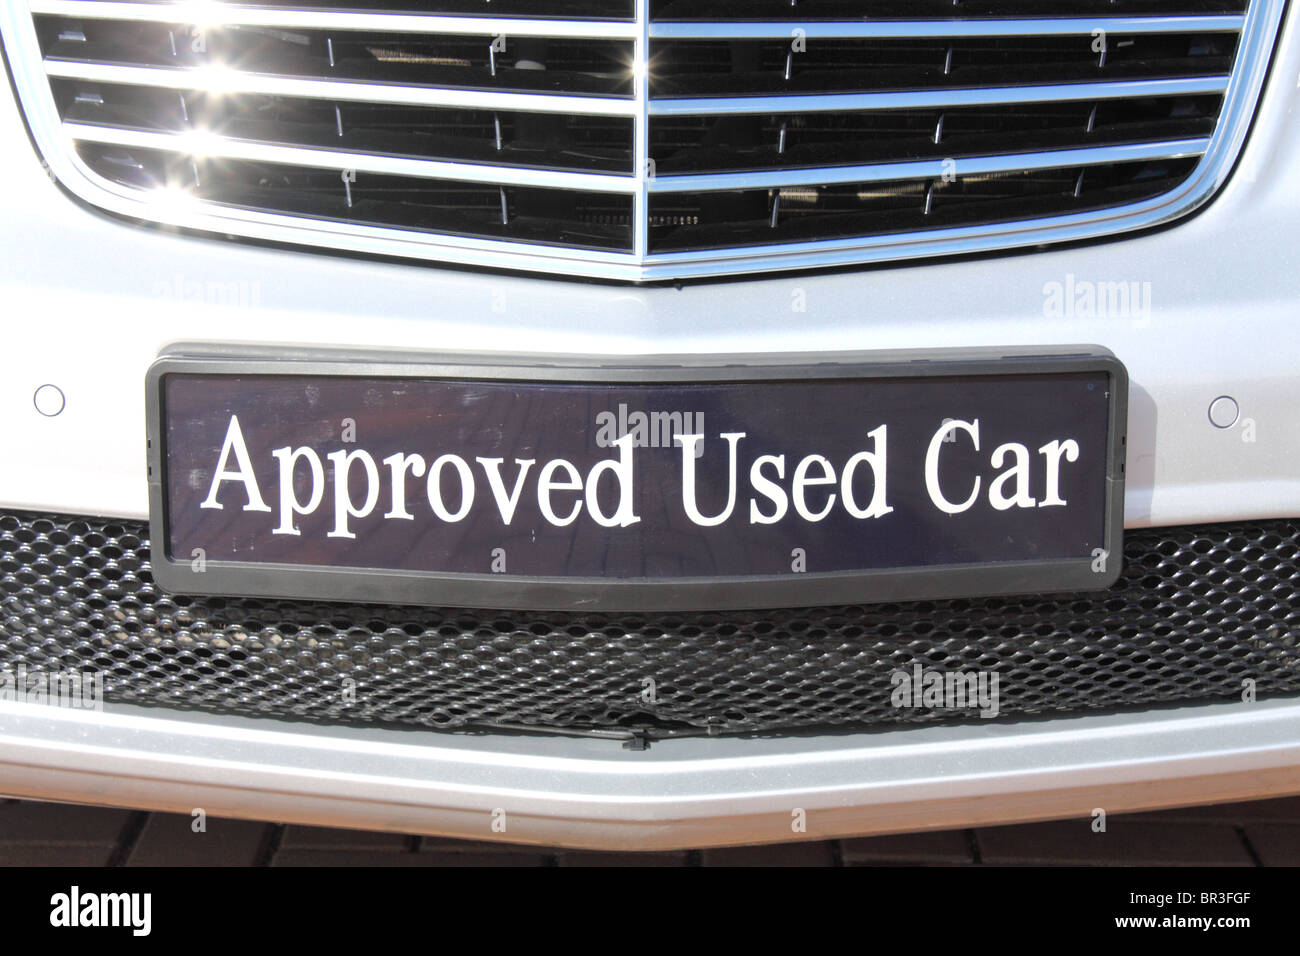 Used Cars For Sale Stock Image Image Of Cars License: Approved Used Car Sign On Number Plate Of A Car For Sale